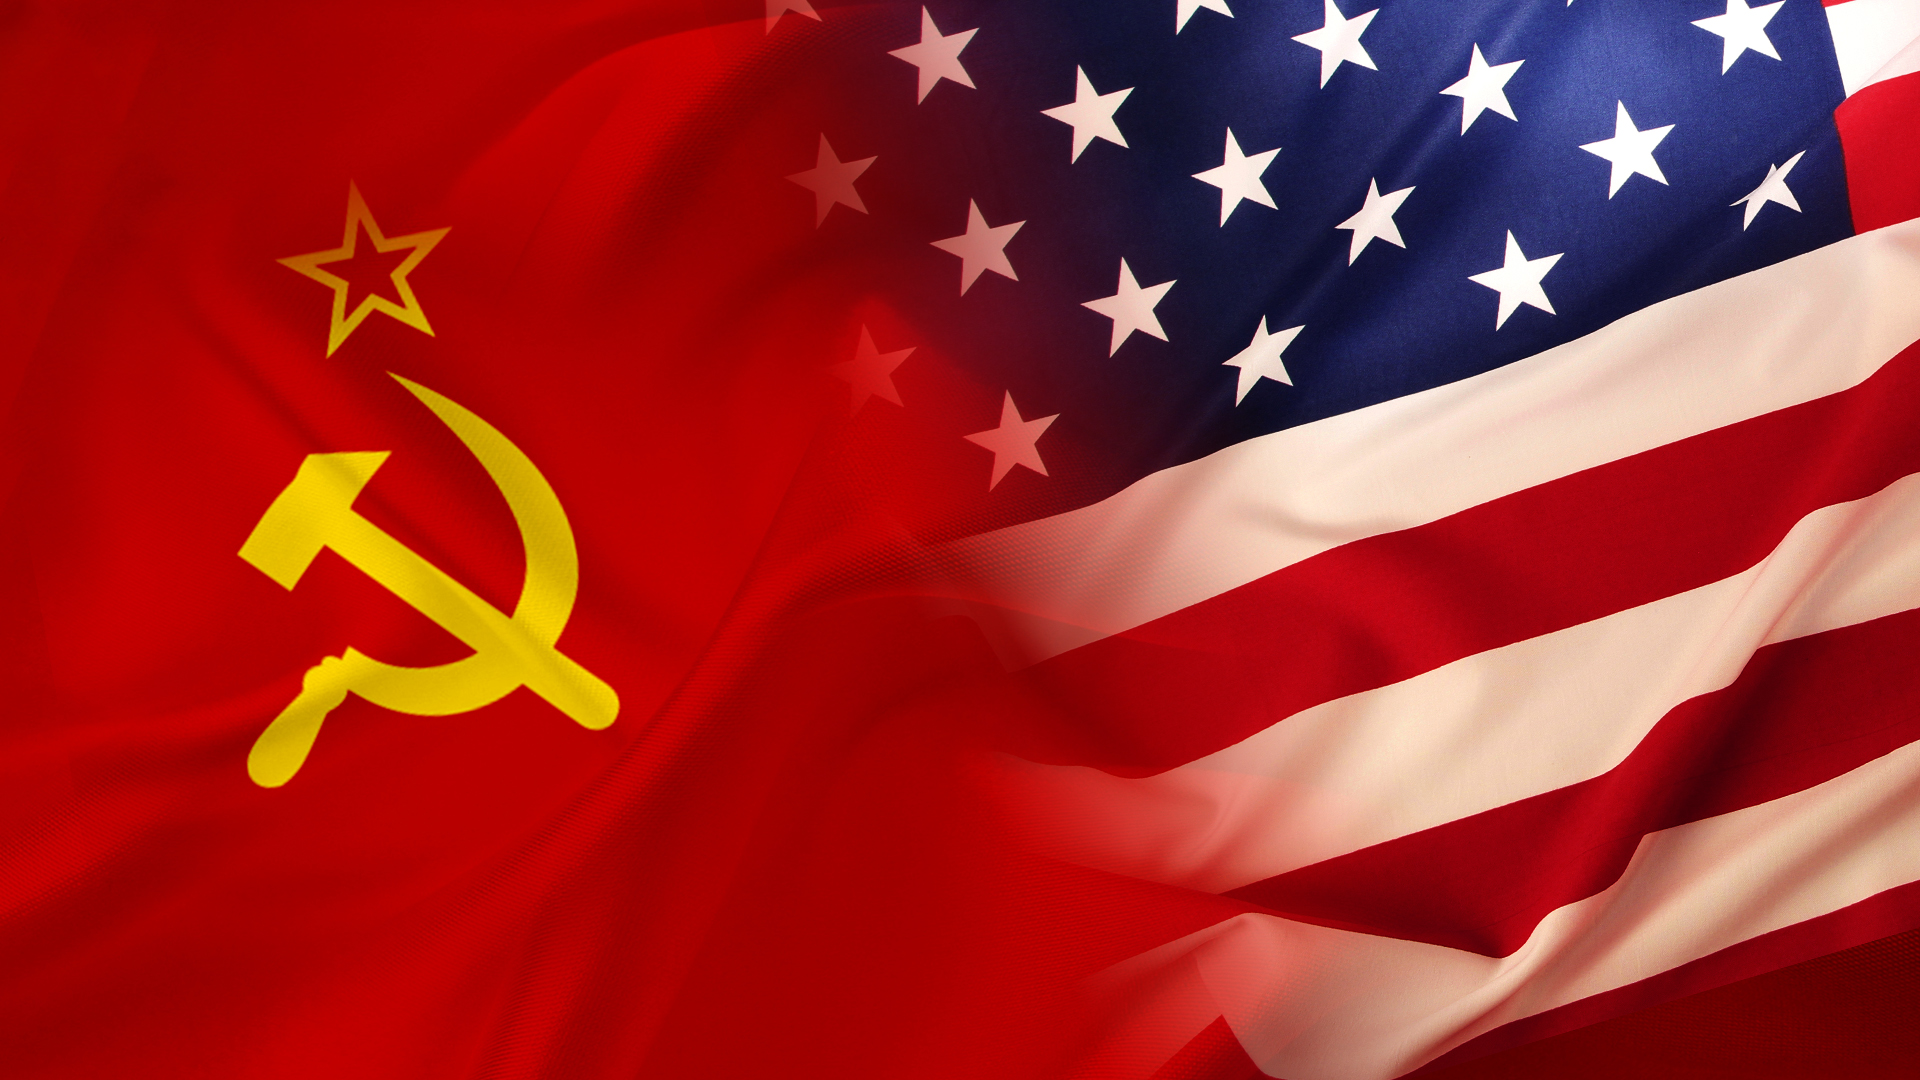 what effect did military policies and actions in the united states and in the soviet union have?